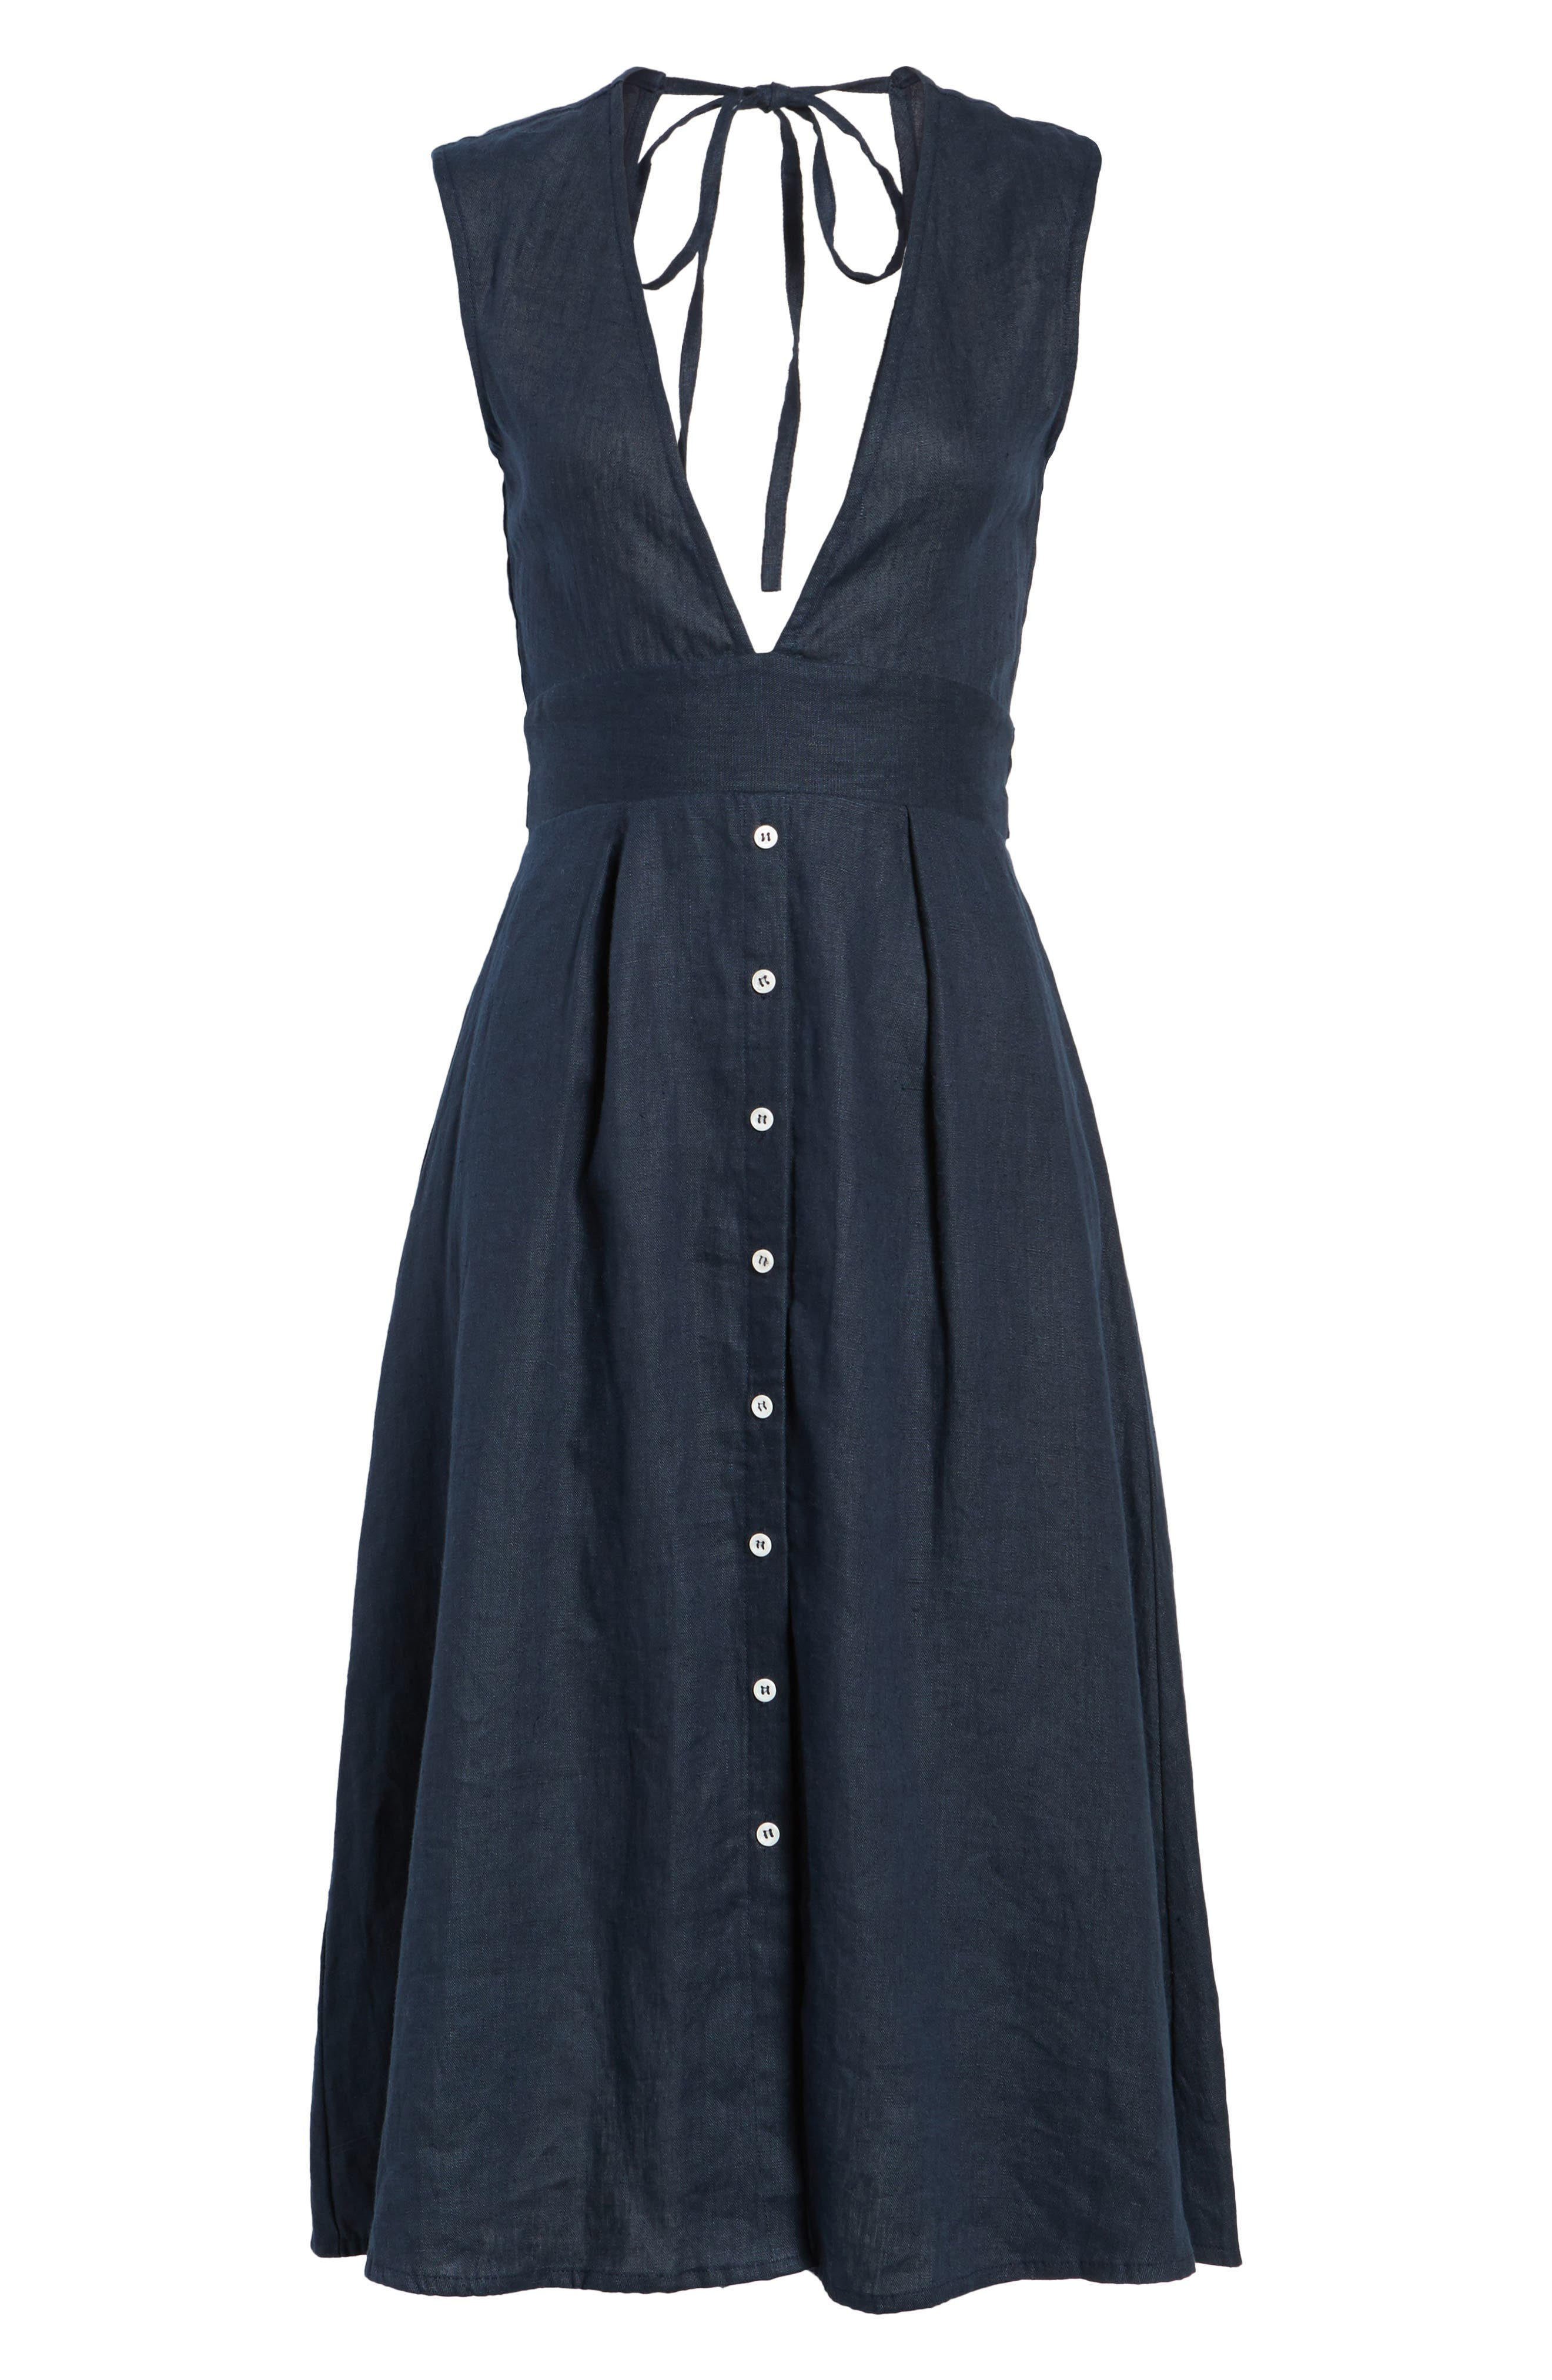 Le Roch Midi Dress,                             Alternate thumbnail 6, color,